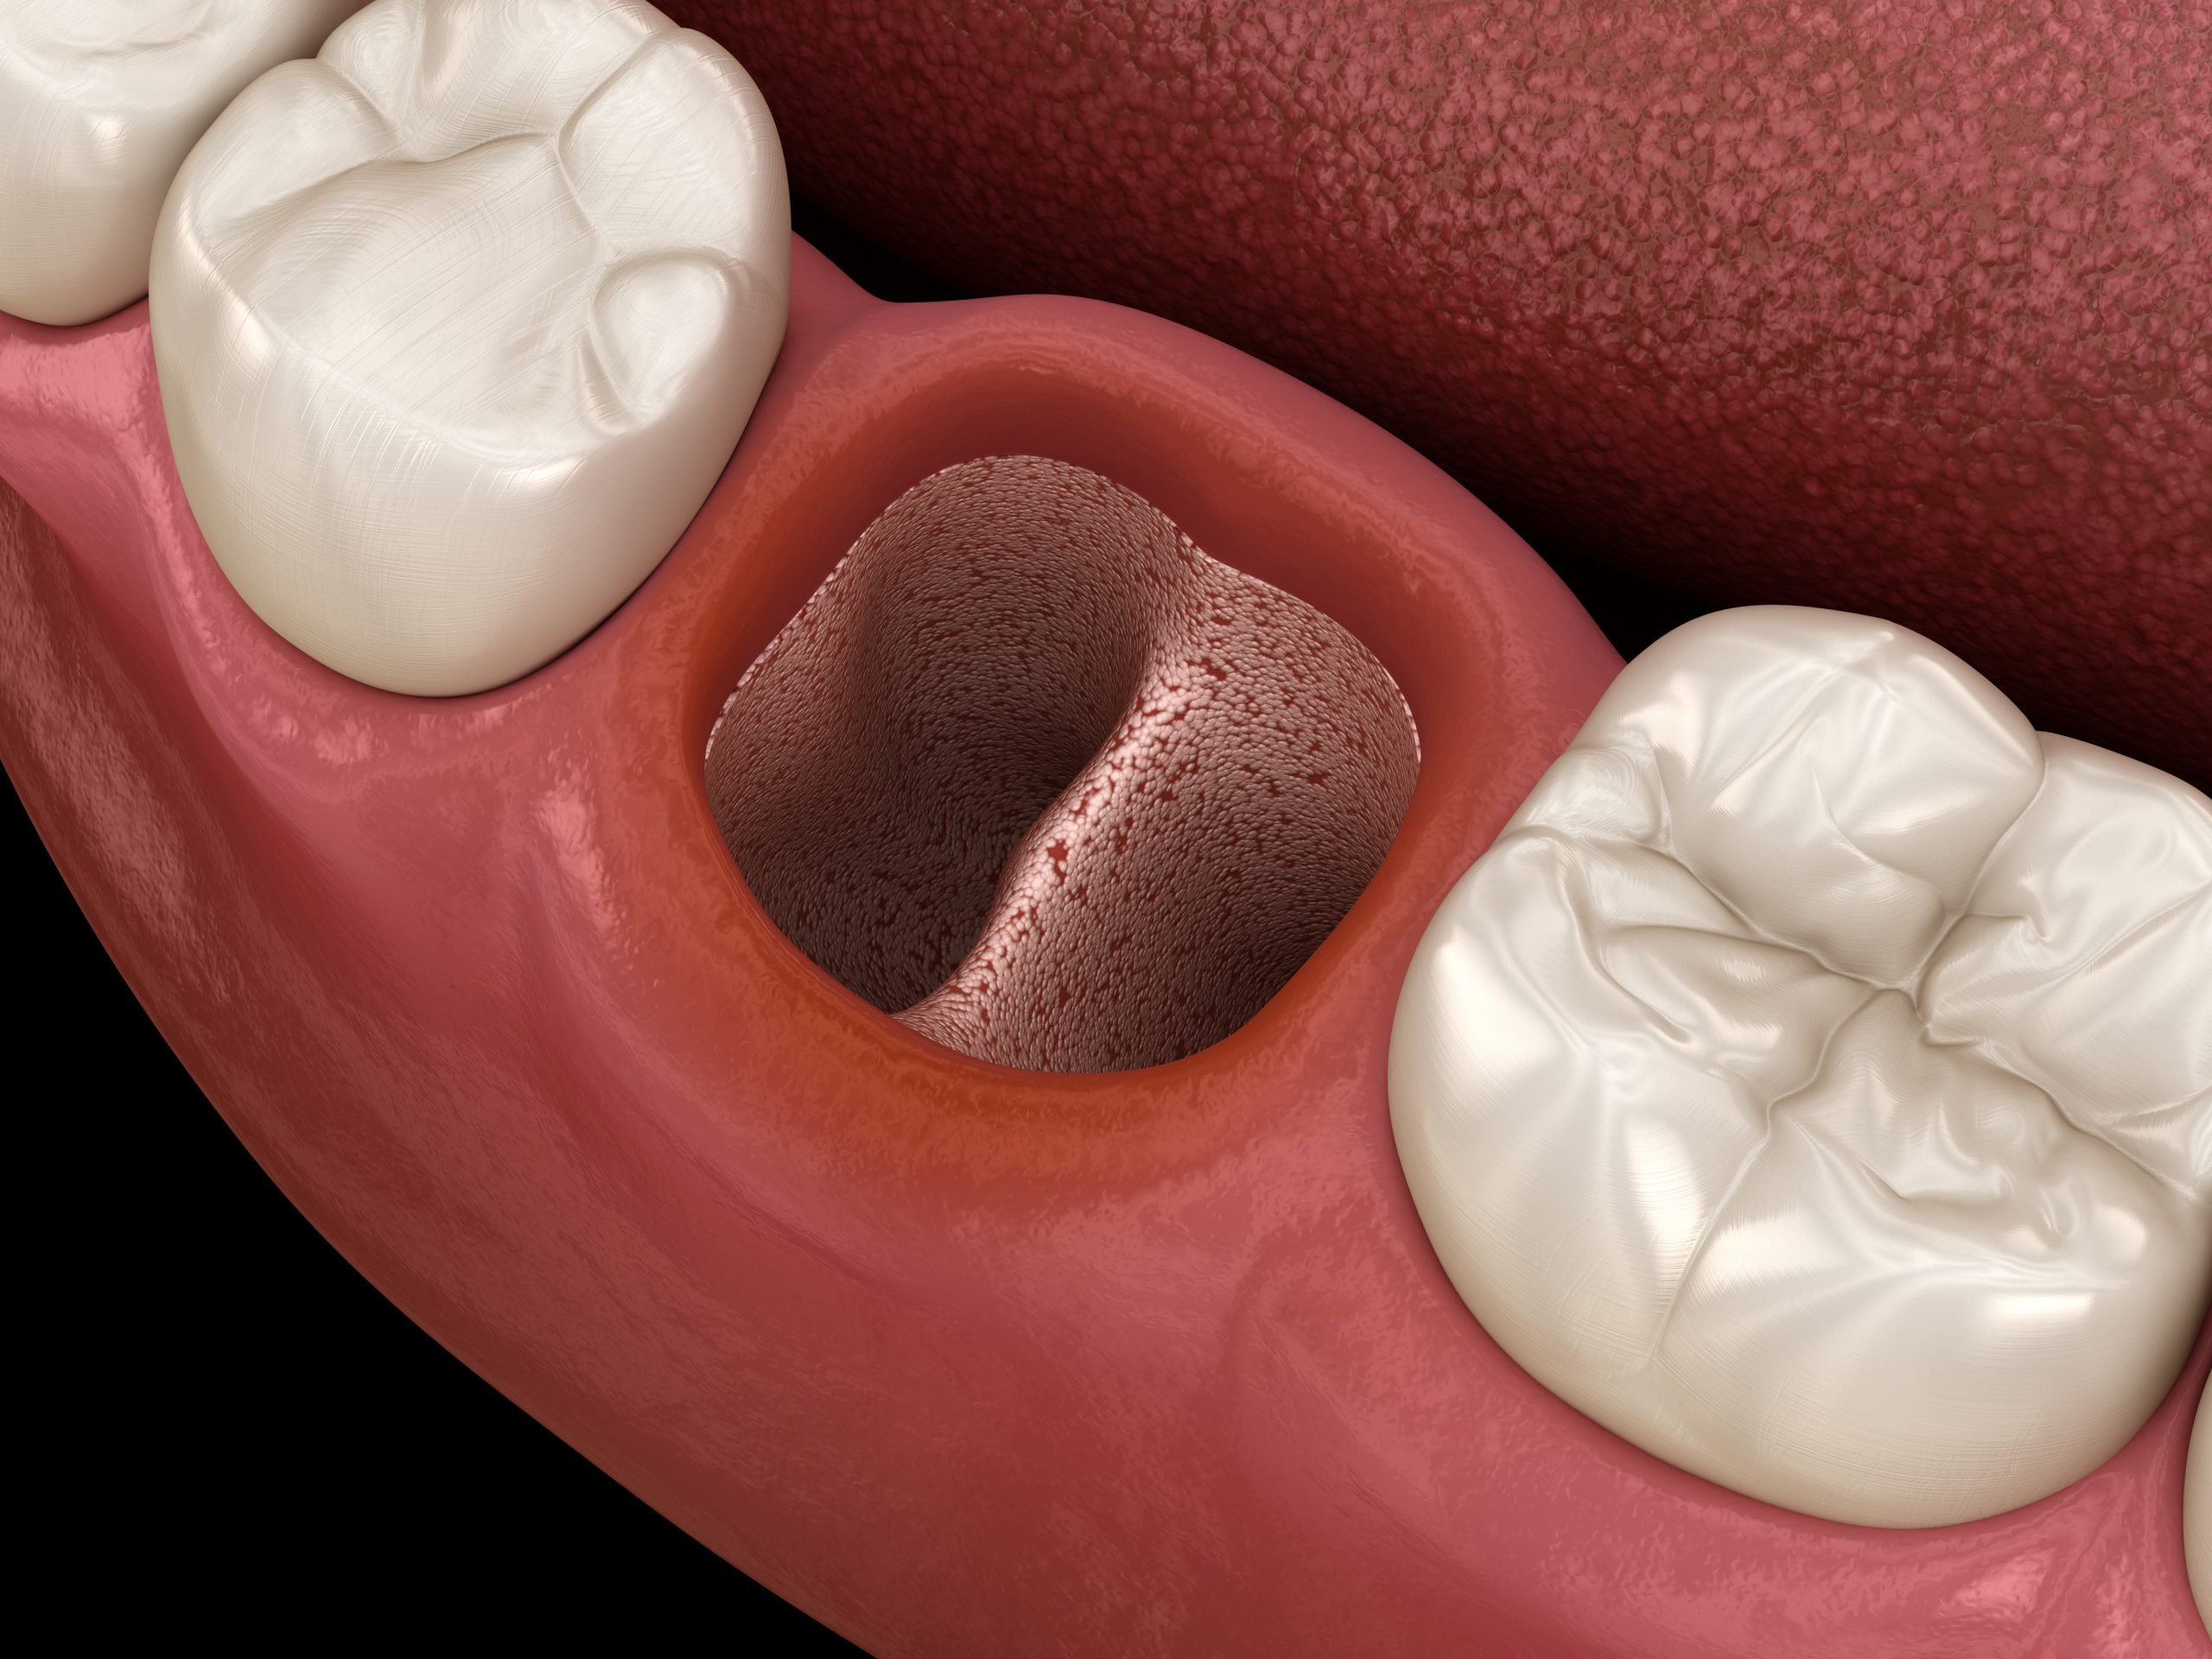 austin tooth extraction